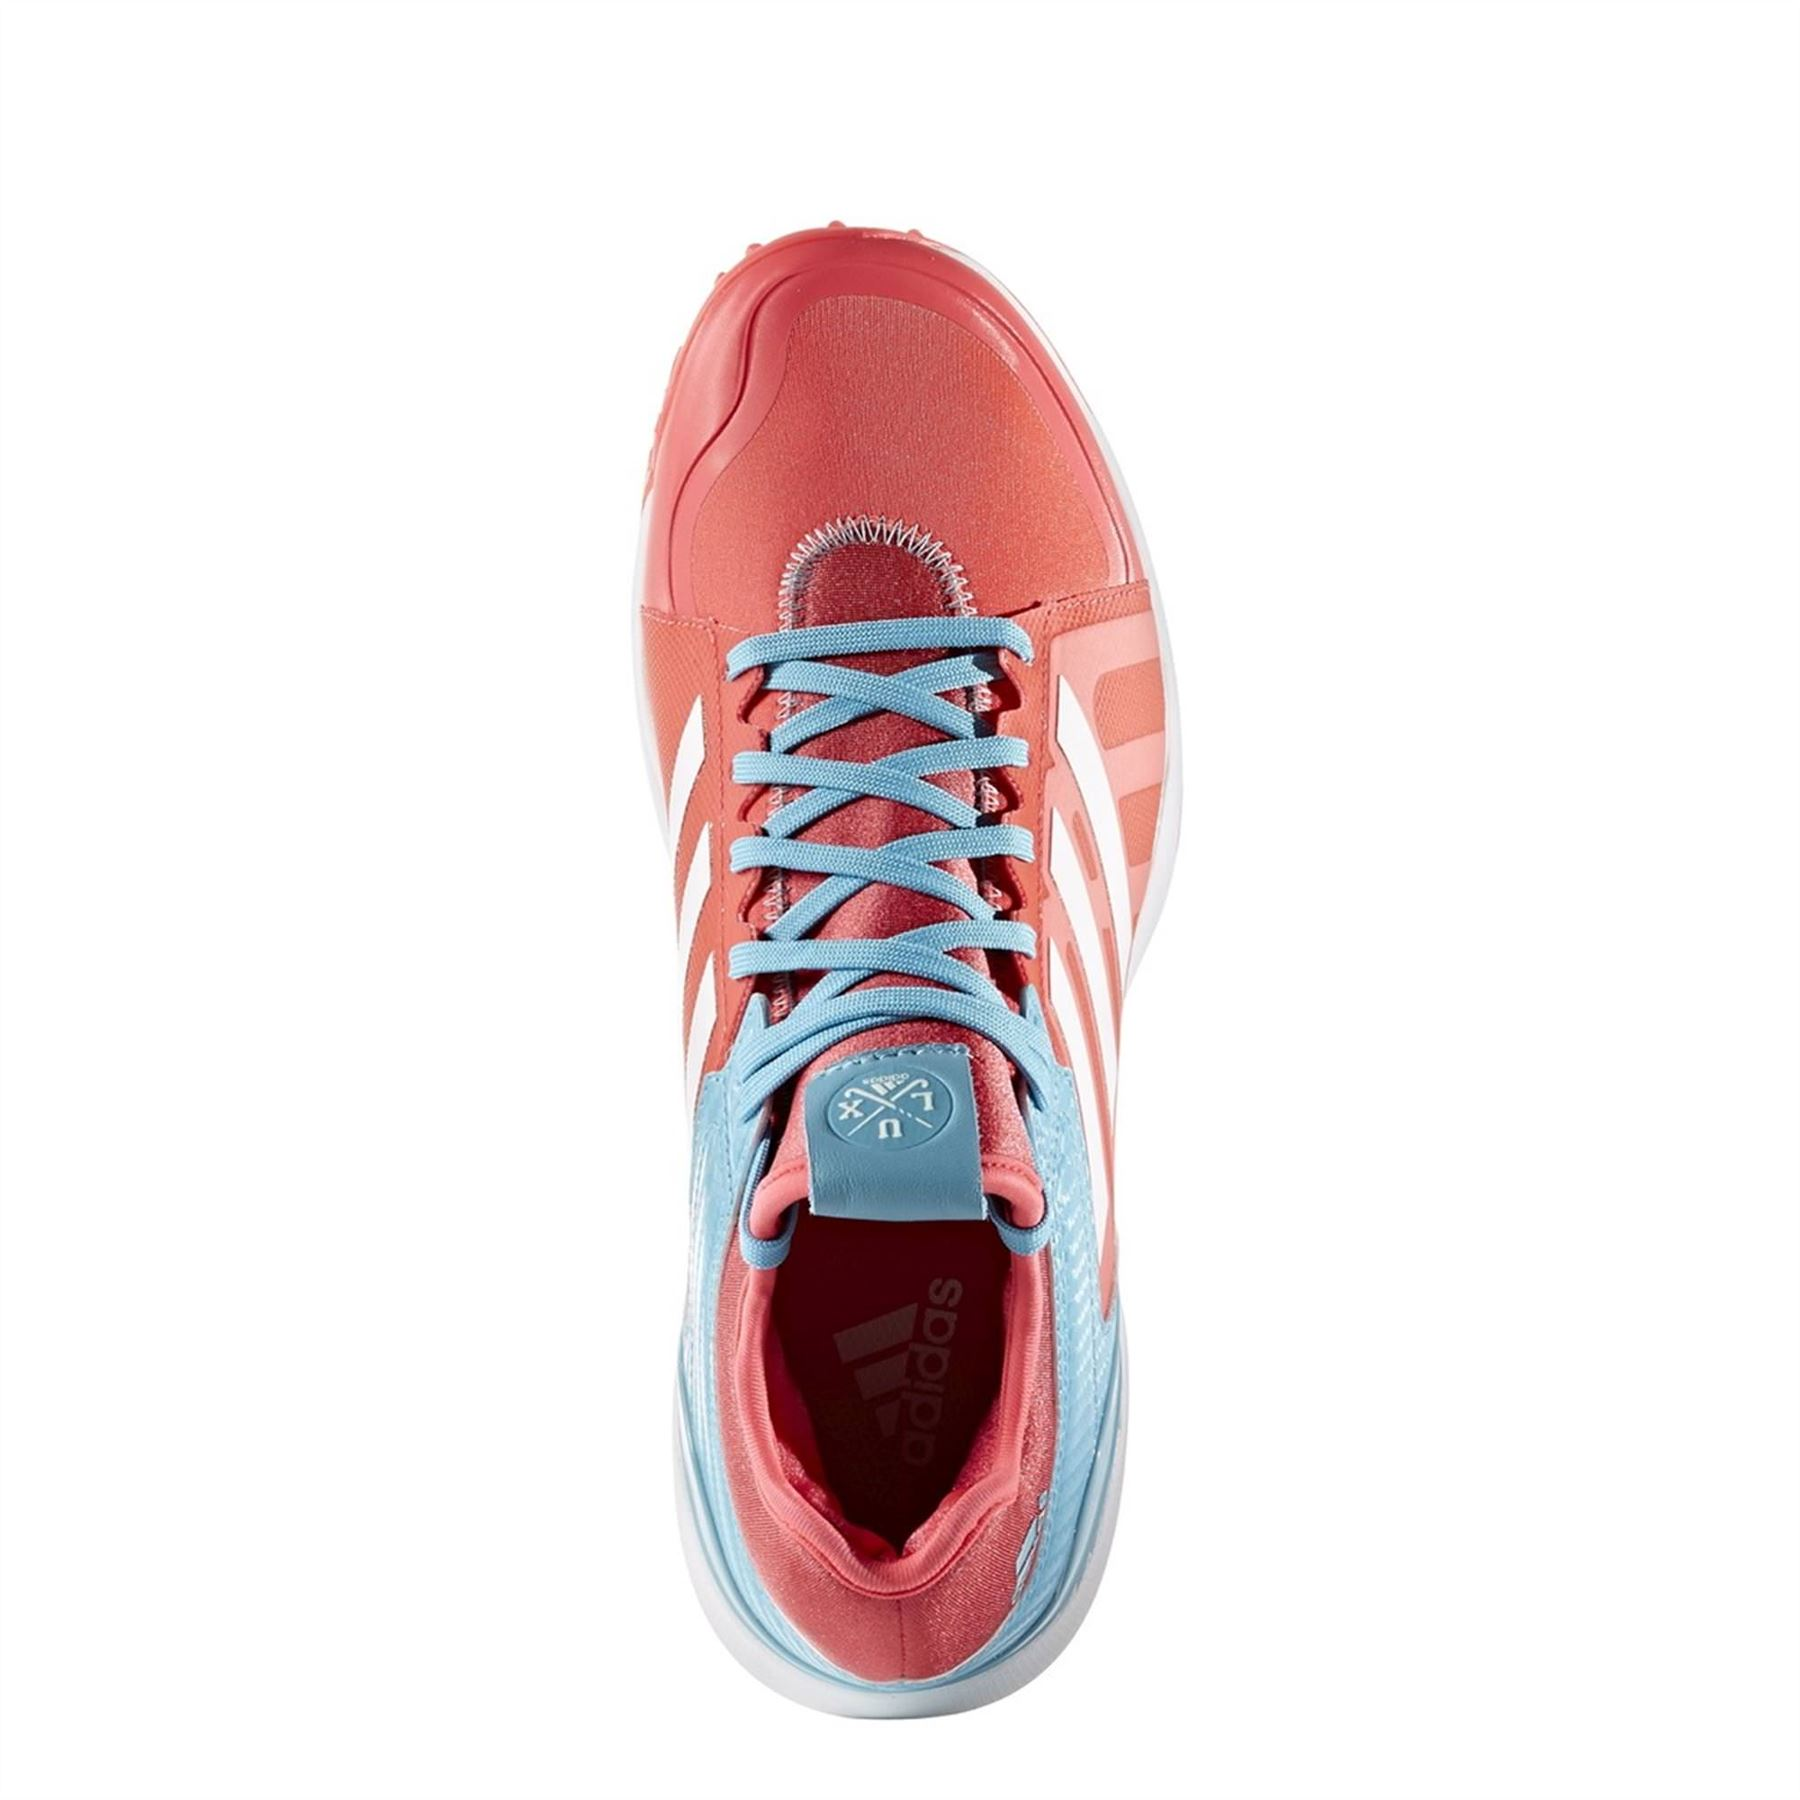 new concept 1ca36 11dab ... adidas Hockey Lux Field Hockey Shoes Womens Red Astro Turf Trainers  Sneakers ...